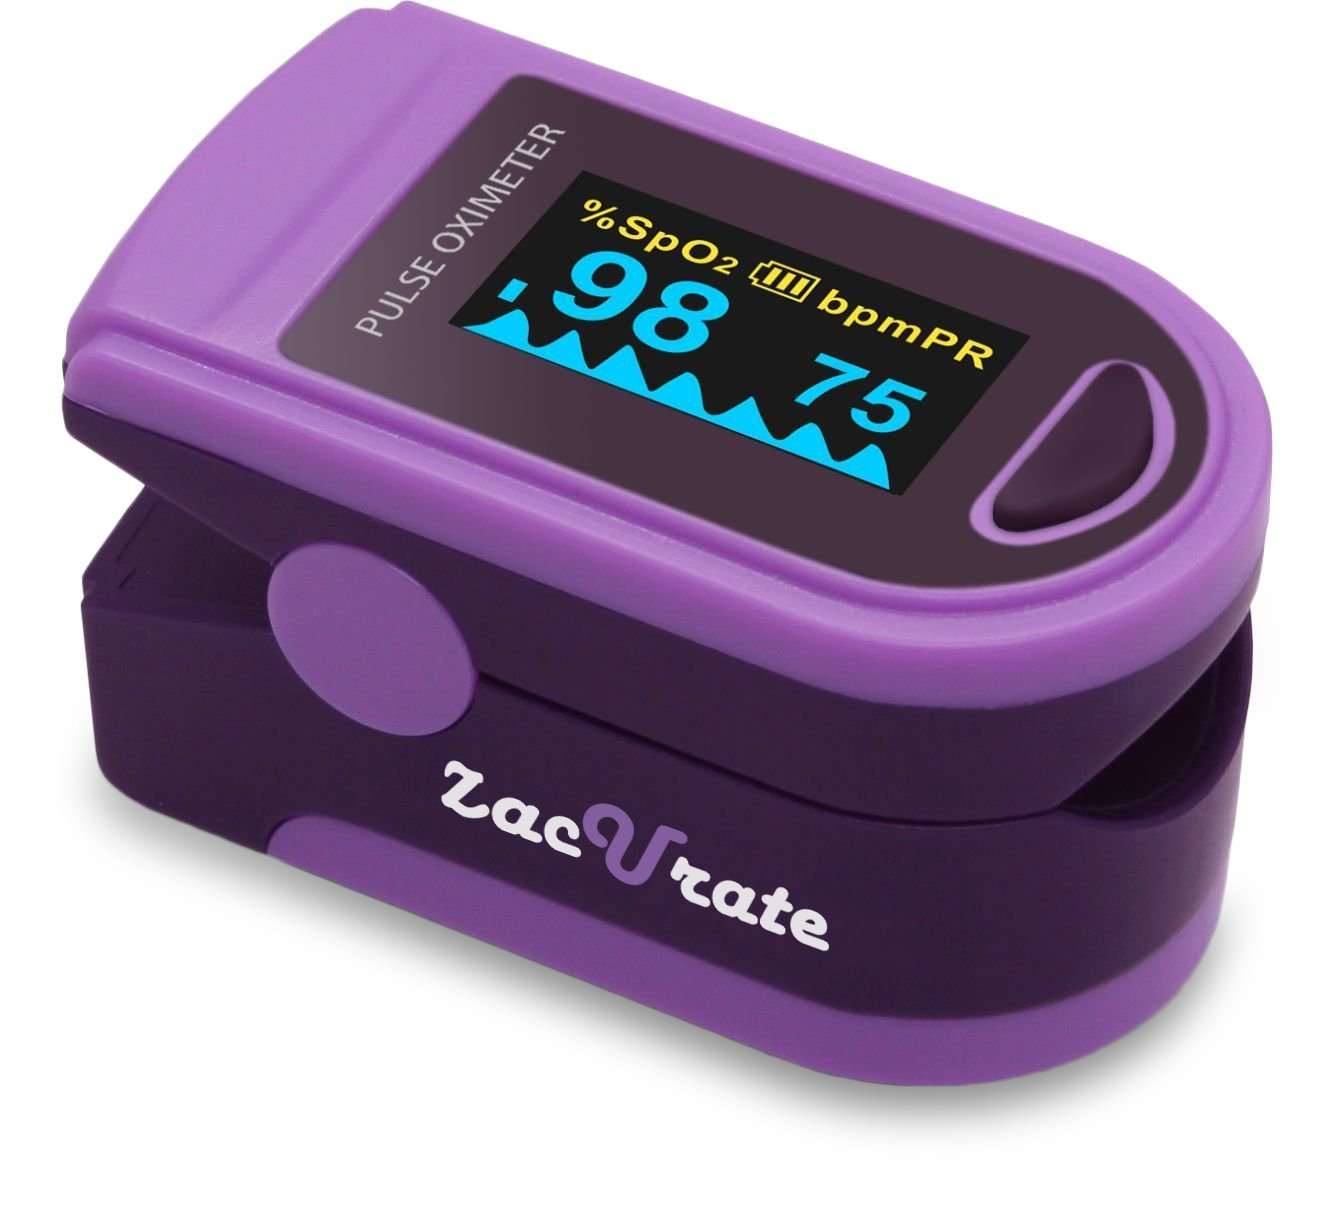 Zacurate Pro Series 500D Deluxe Fingertip Pulse Oximeter Blood Oxygen Saturation Monitor with Silicon Cover, Batteries & Lanyard (Royal Purple)